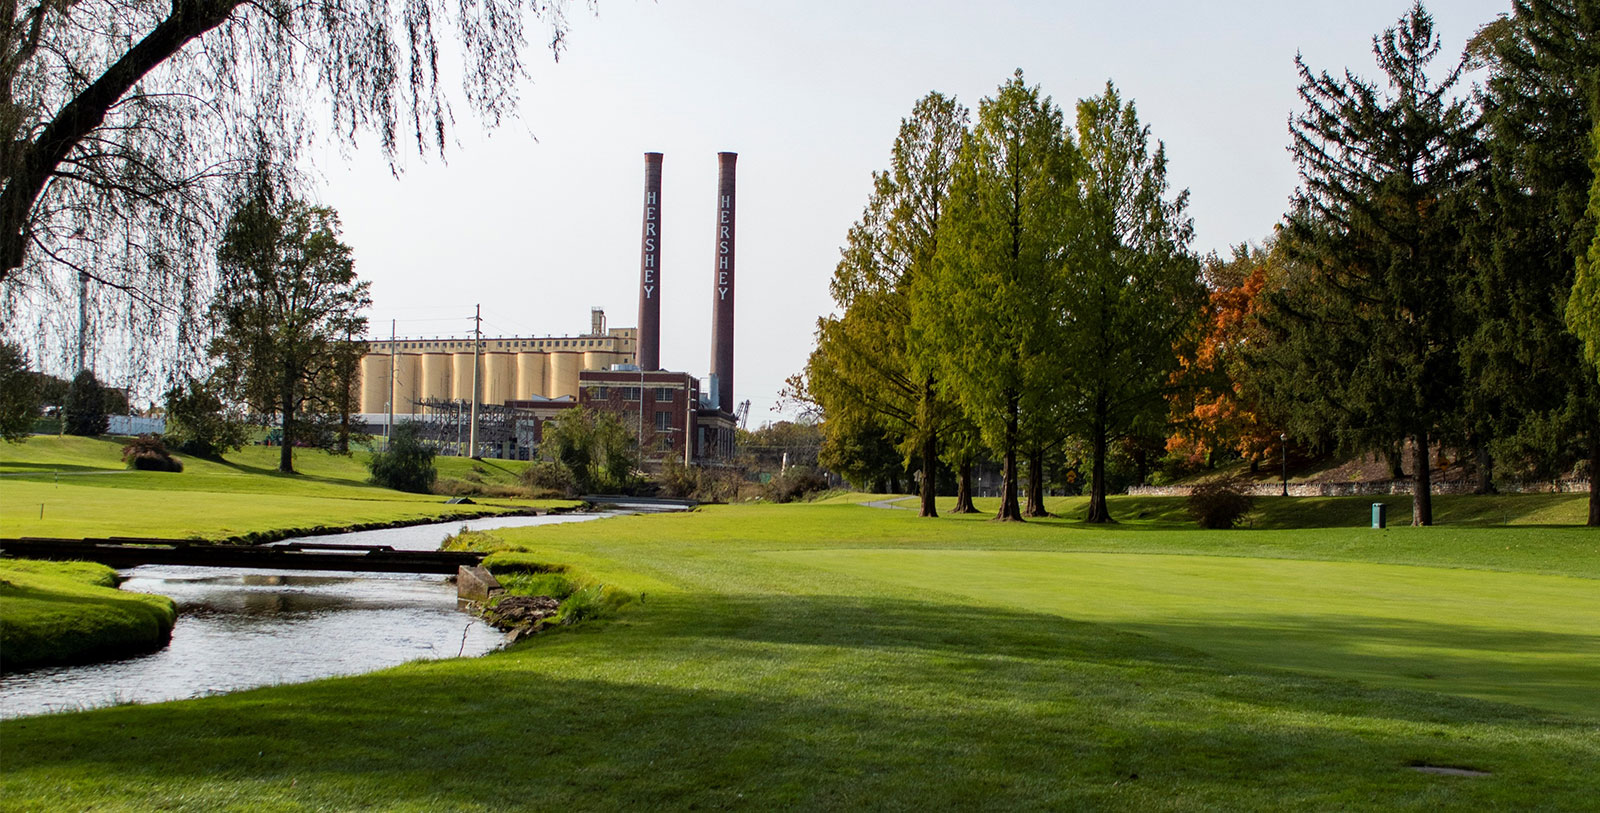 Image of Hotel Hershey's Golf Course with Chocolate Factory in the background, 1933, Member of Historic Hotels of America, Hershey, Pennsylvania, Golf